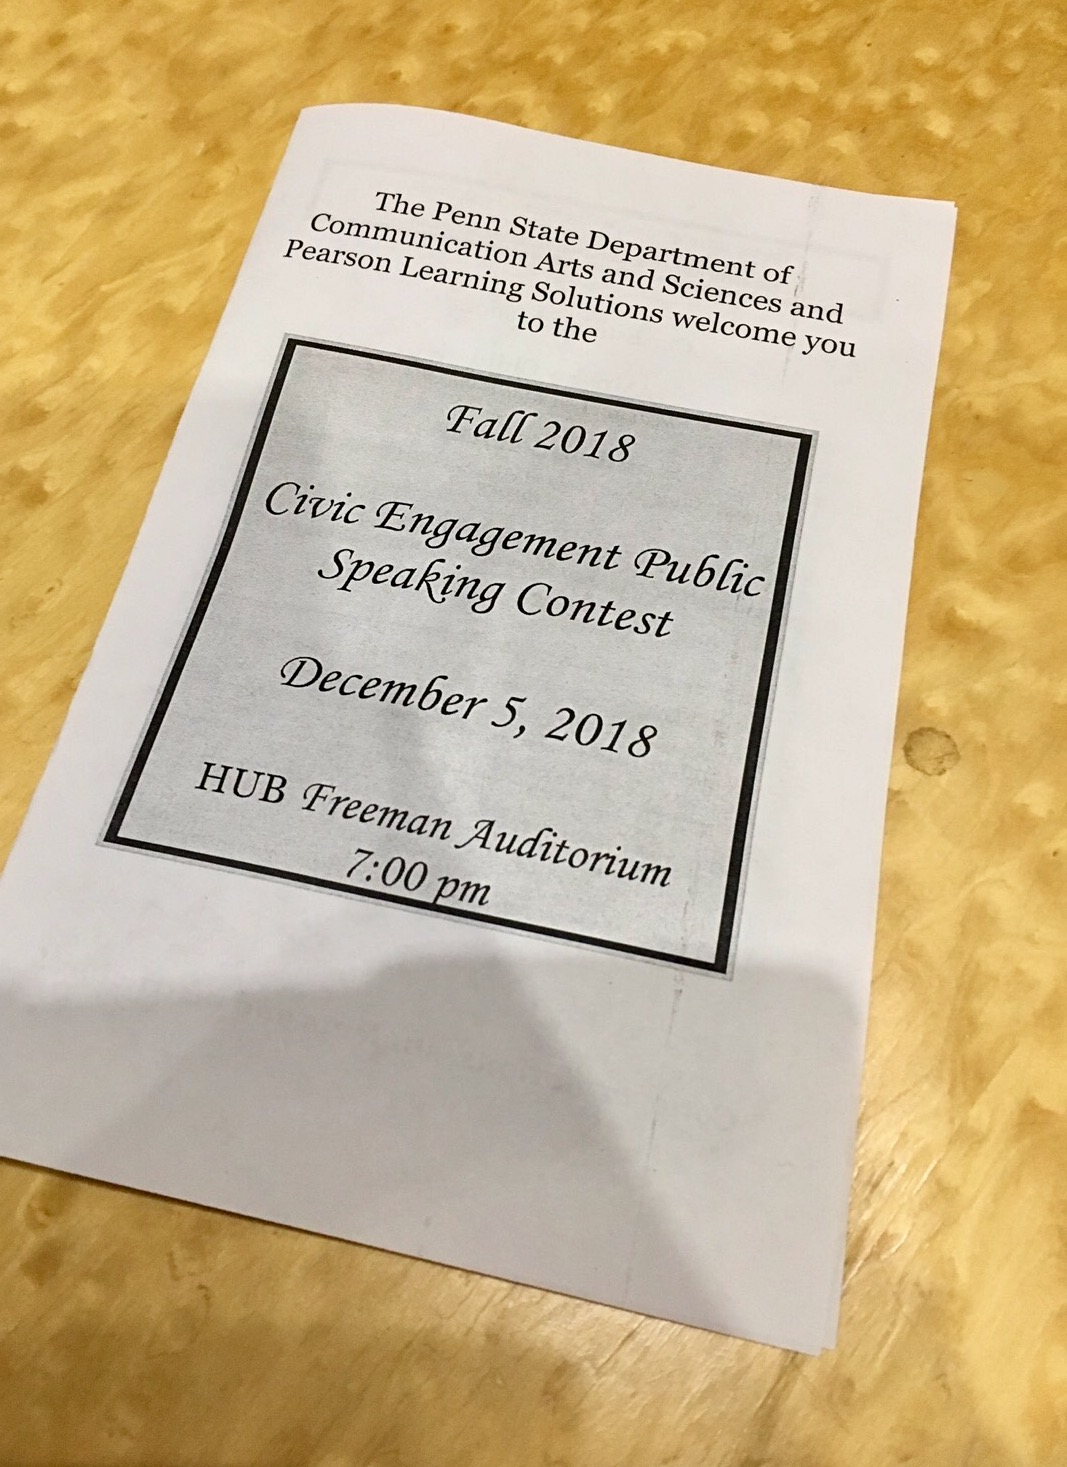 Congratulations to the 2018 Civic Engagement Public Speaking Contest Winners